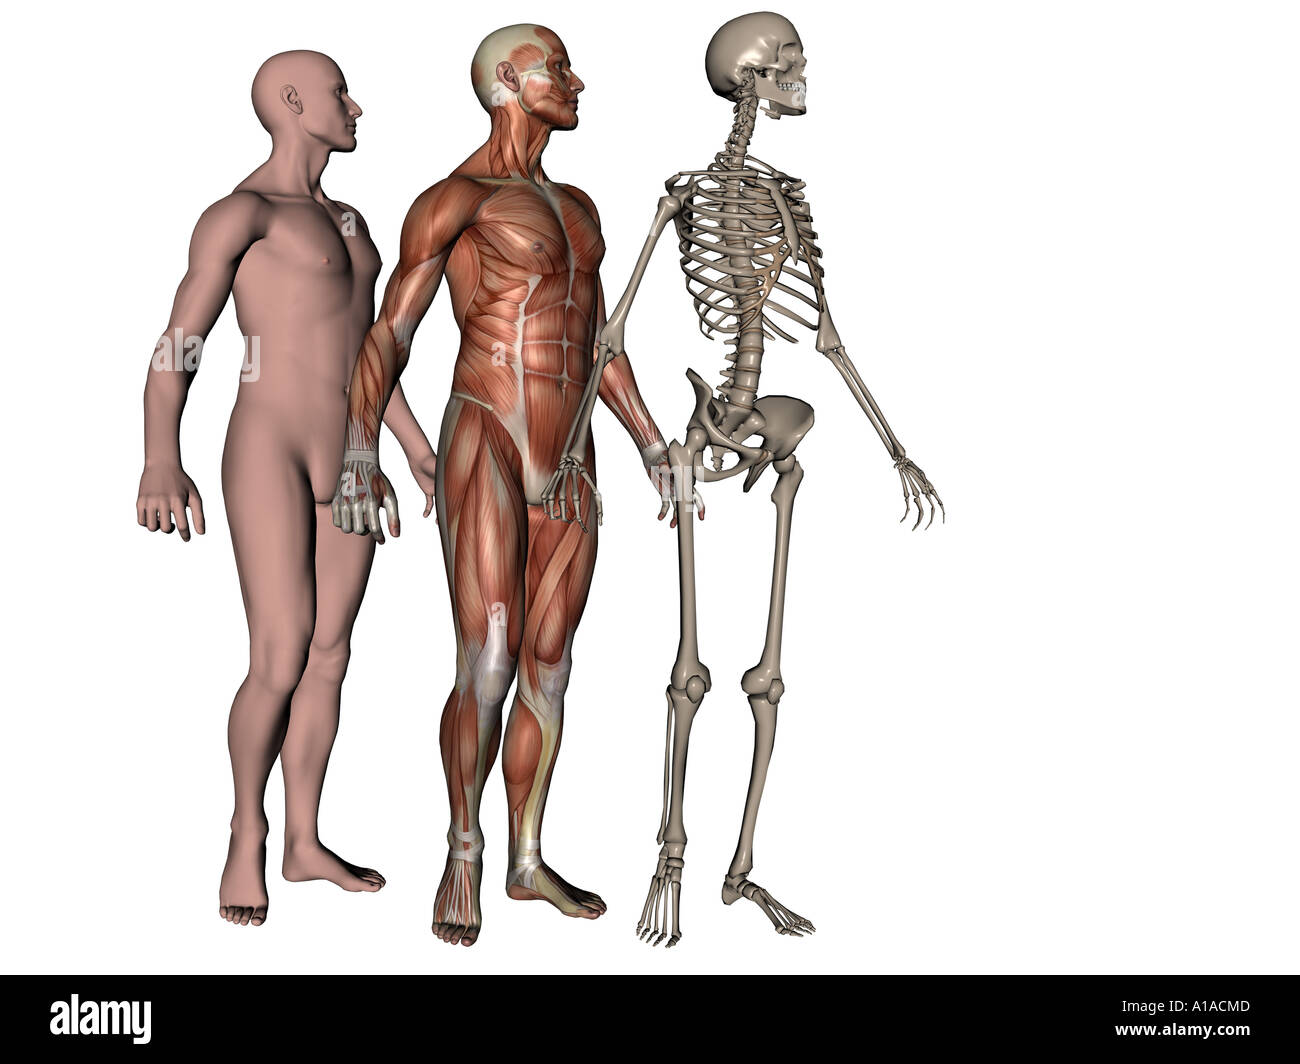 Anatomical Illustration Showing Man With Skin Musculature And Stock